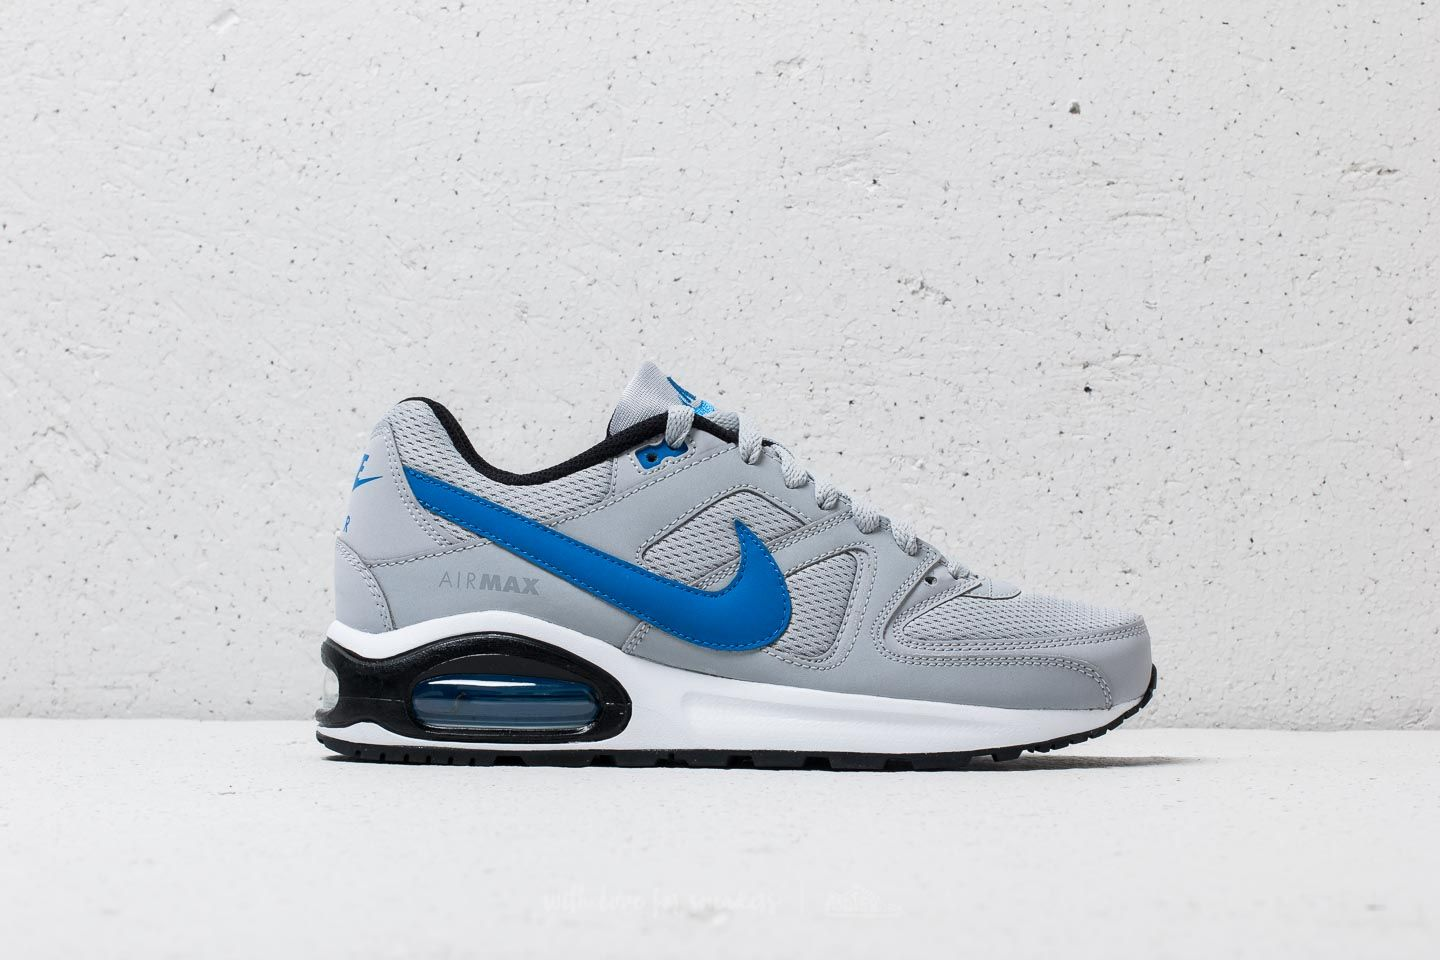 c428deeedf6d Nike Air Max Command Flex (GS) Wolf Grey  Signal Blue-Black ...